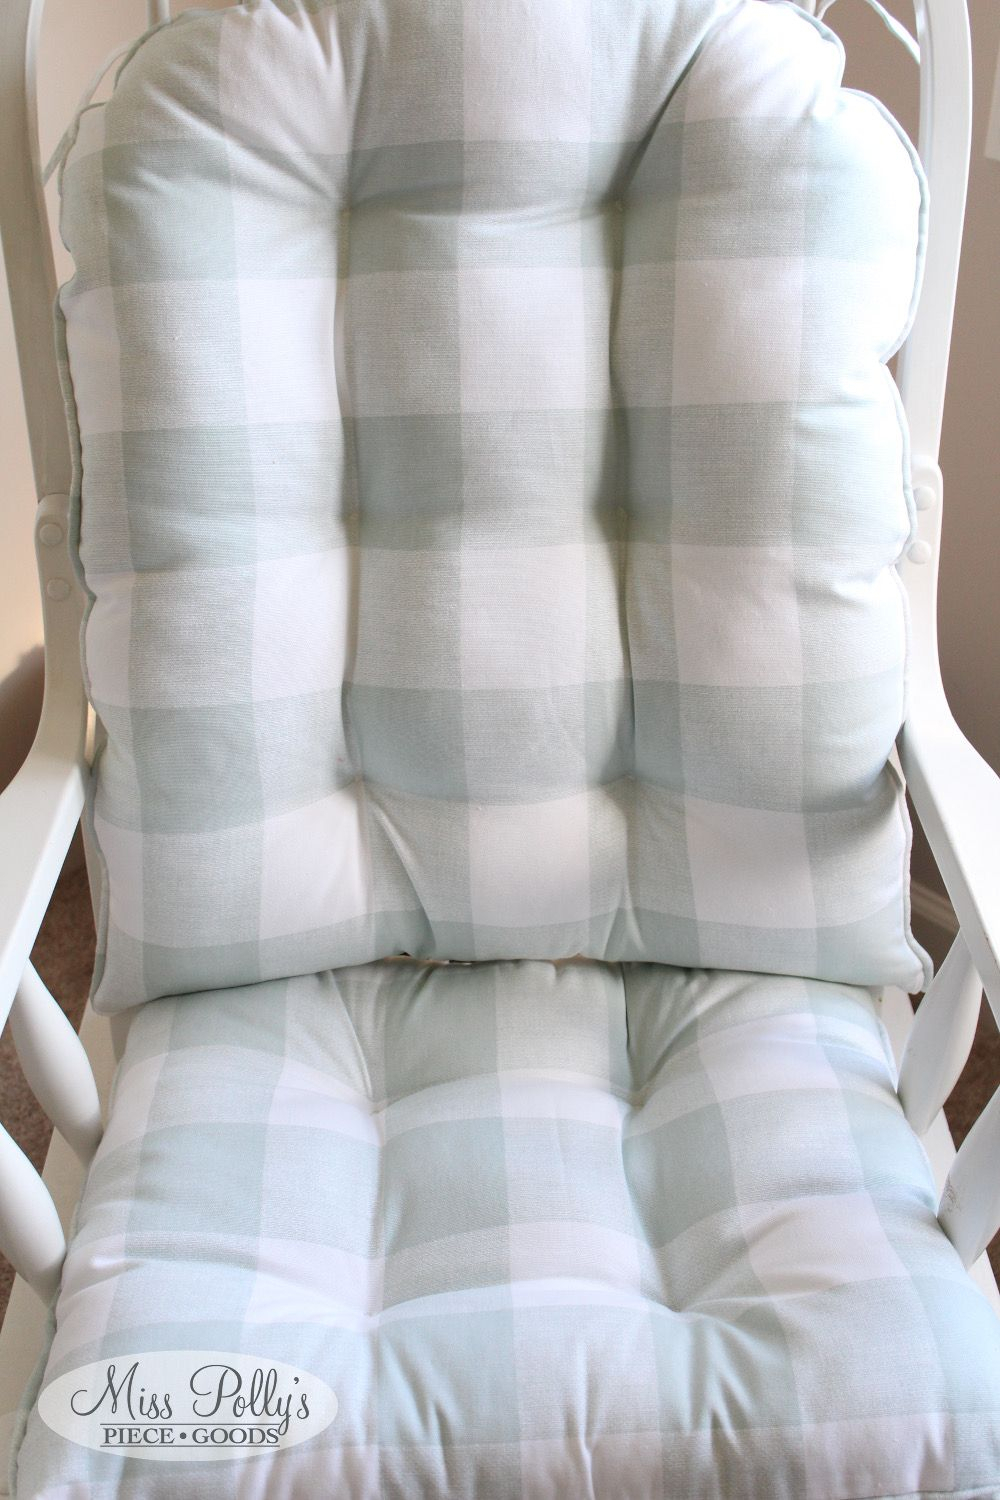 Glider Cushions – Rocker Cushions – Chair Cushions – Glider With Regard To Katrina Grey Swivel Glider Chairs (Image 7 of 20)